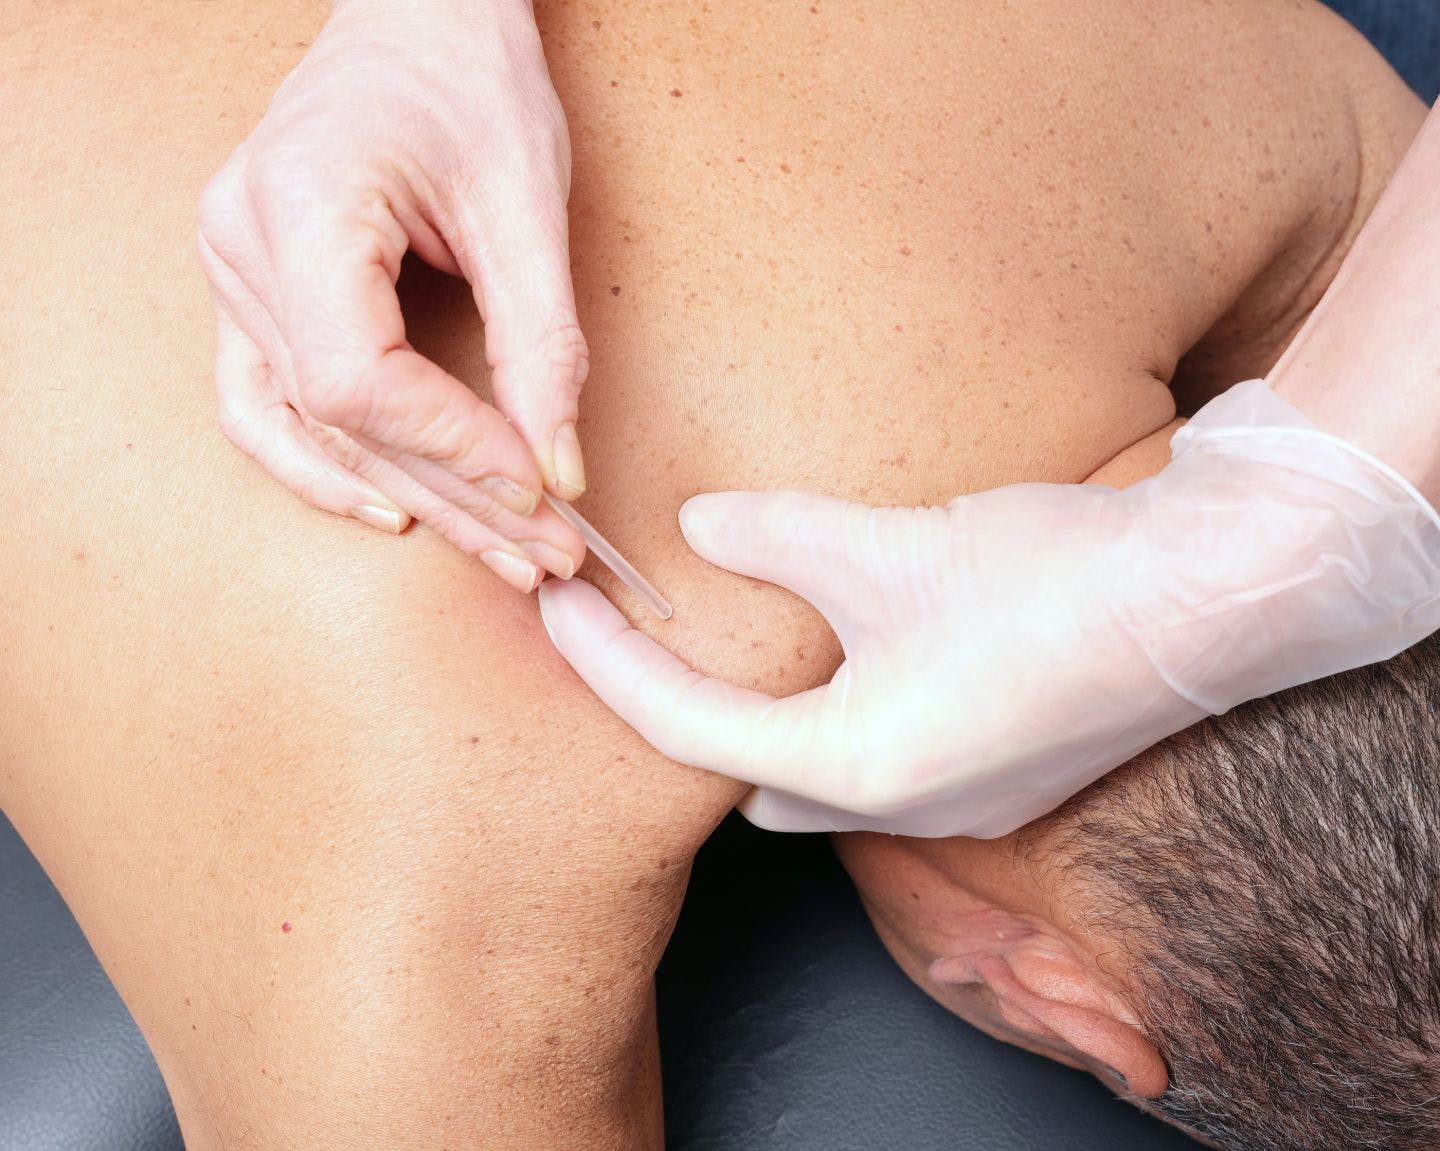 Dry Needling - Total Body Therapy & Wellness - Lillington, NC